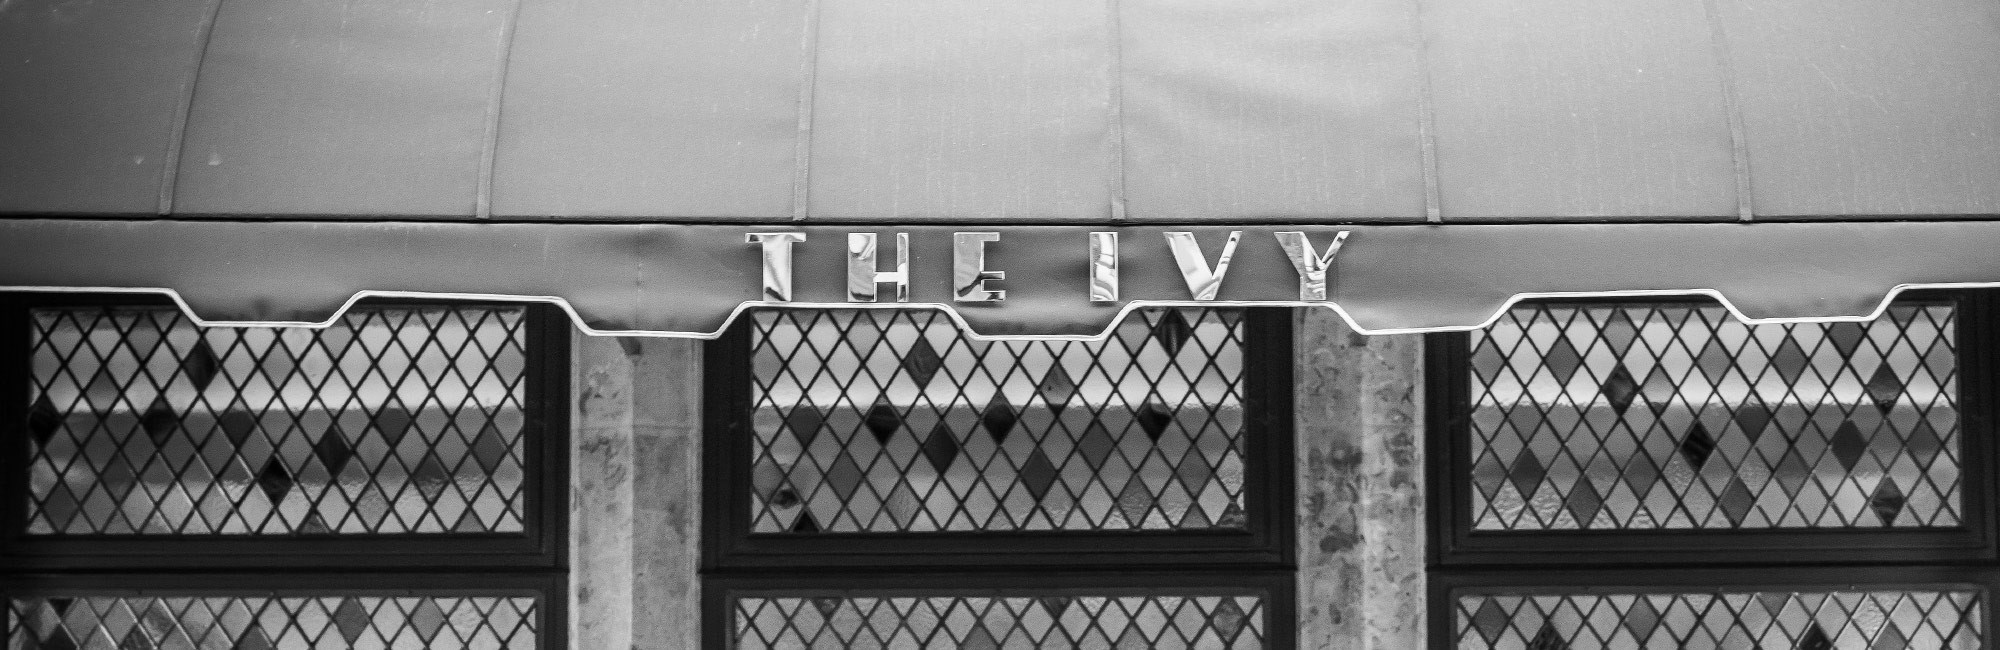 the ivy bw exterior windows by david griffen